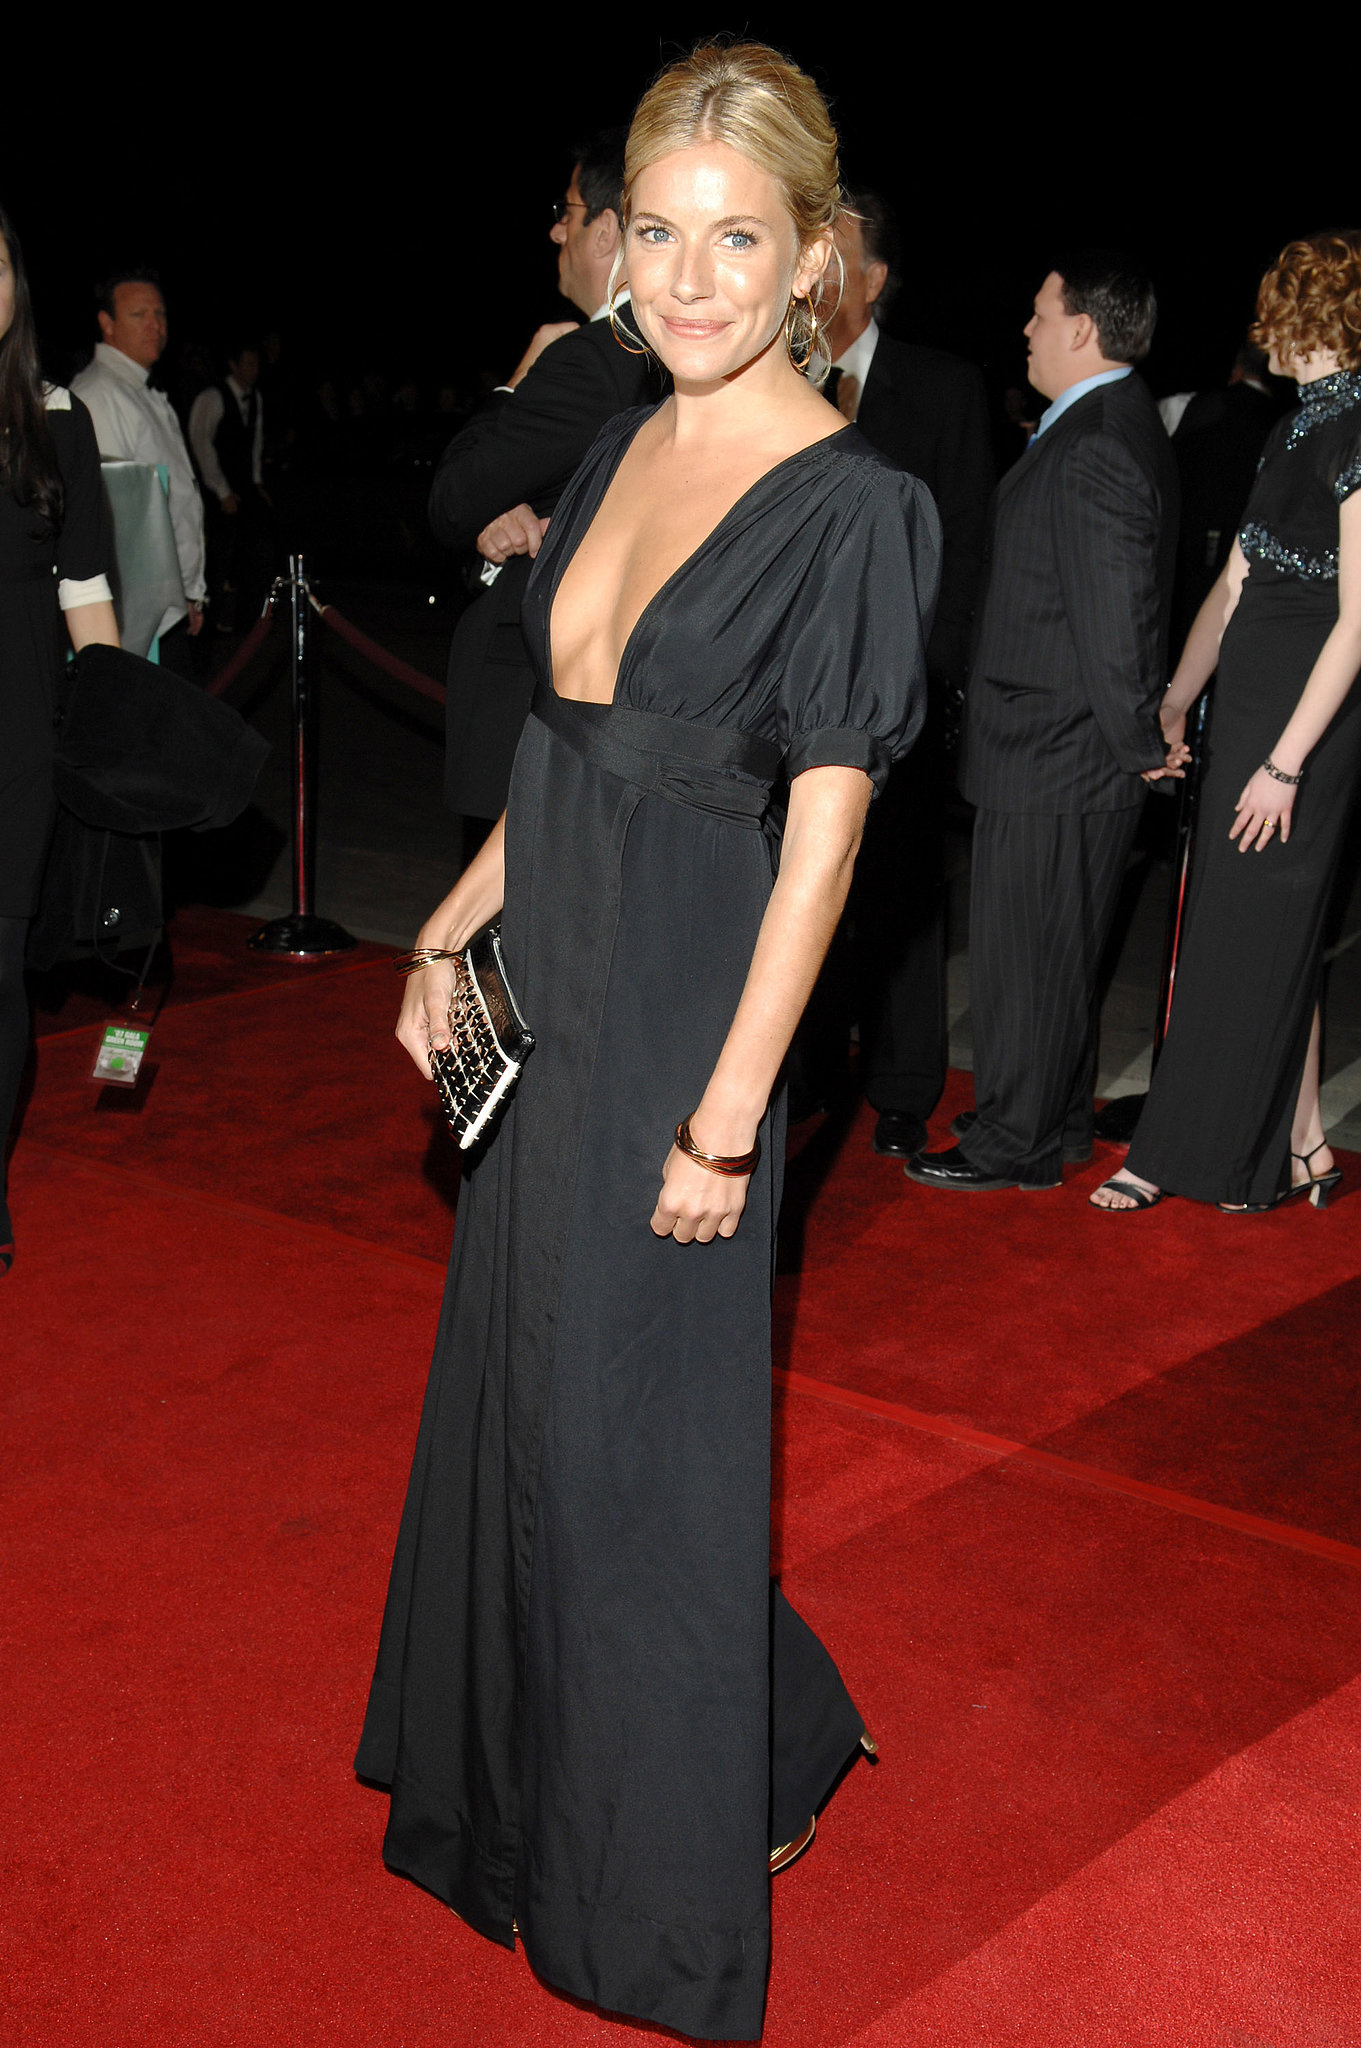 Sienna wore a floor-length black gown with a revealing neckline at the International Palm Springs Film Festival Awards Gala in 2007.